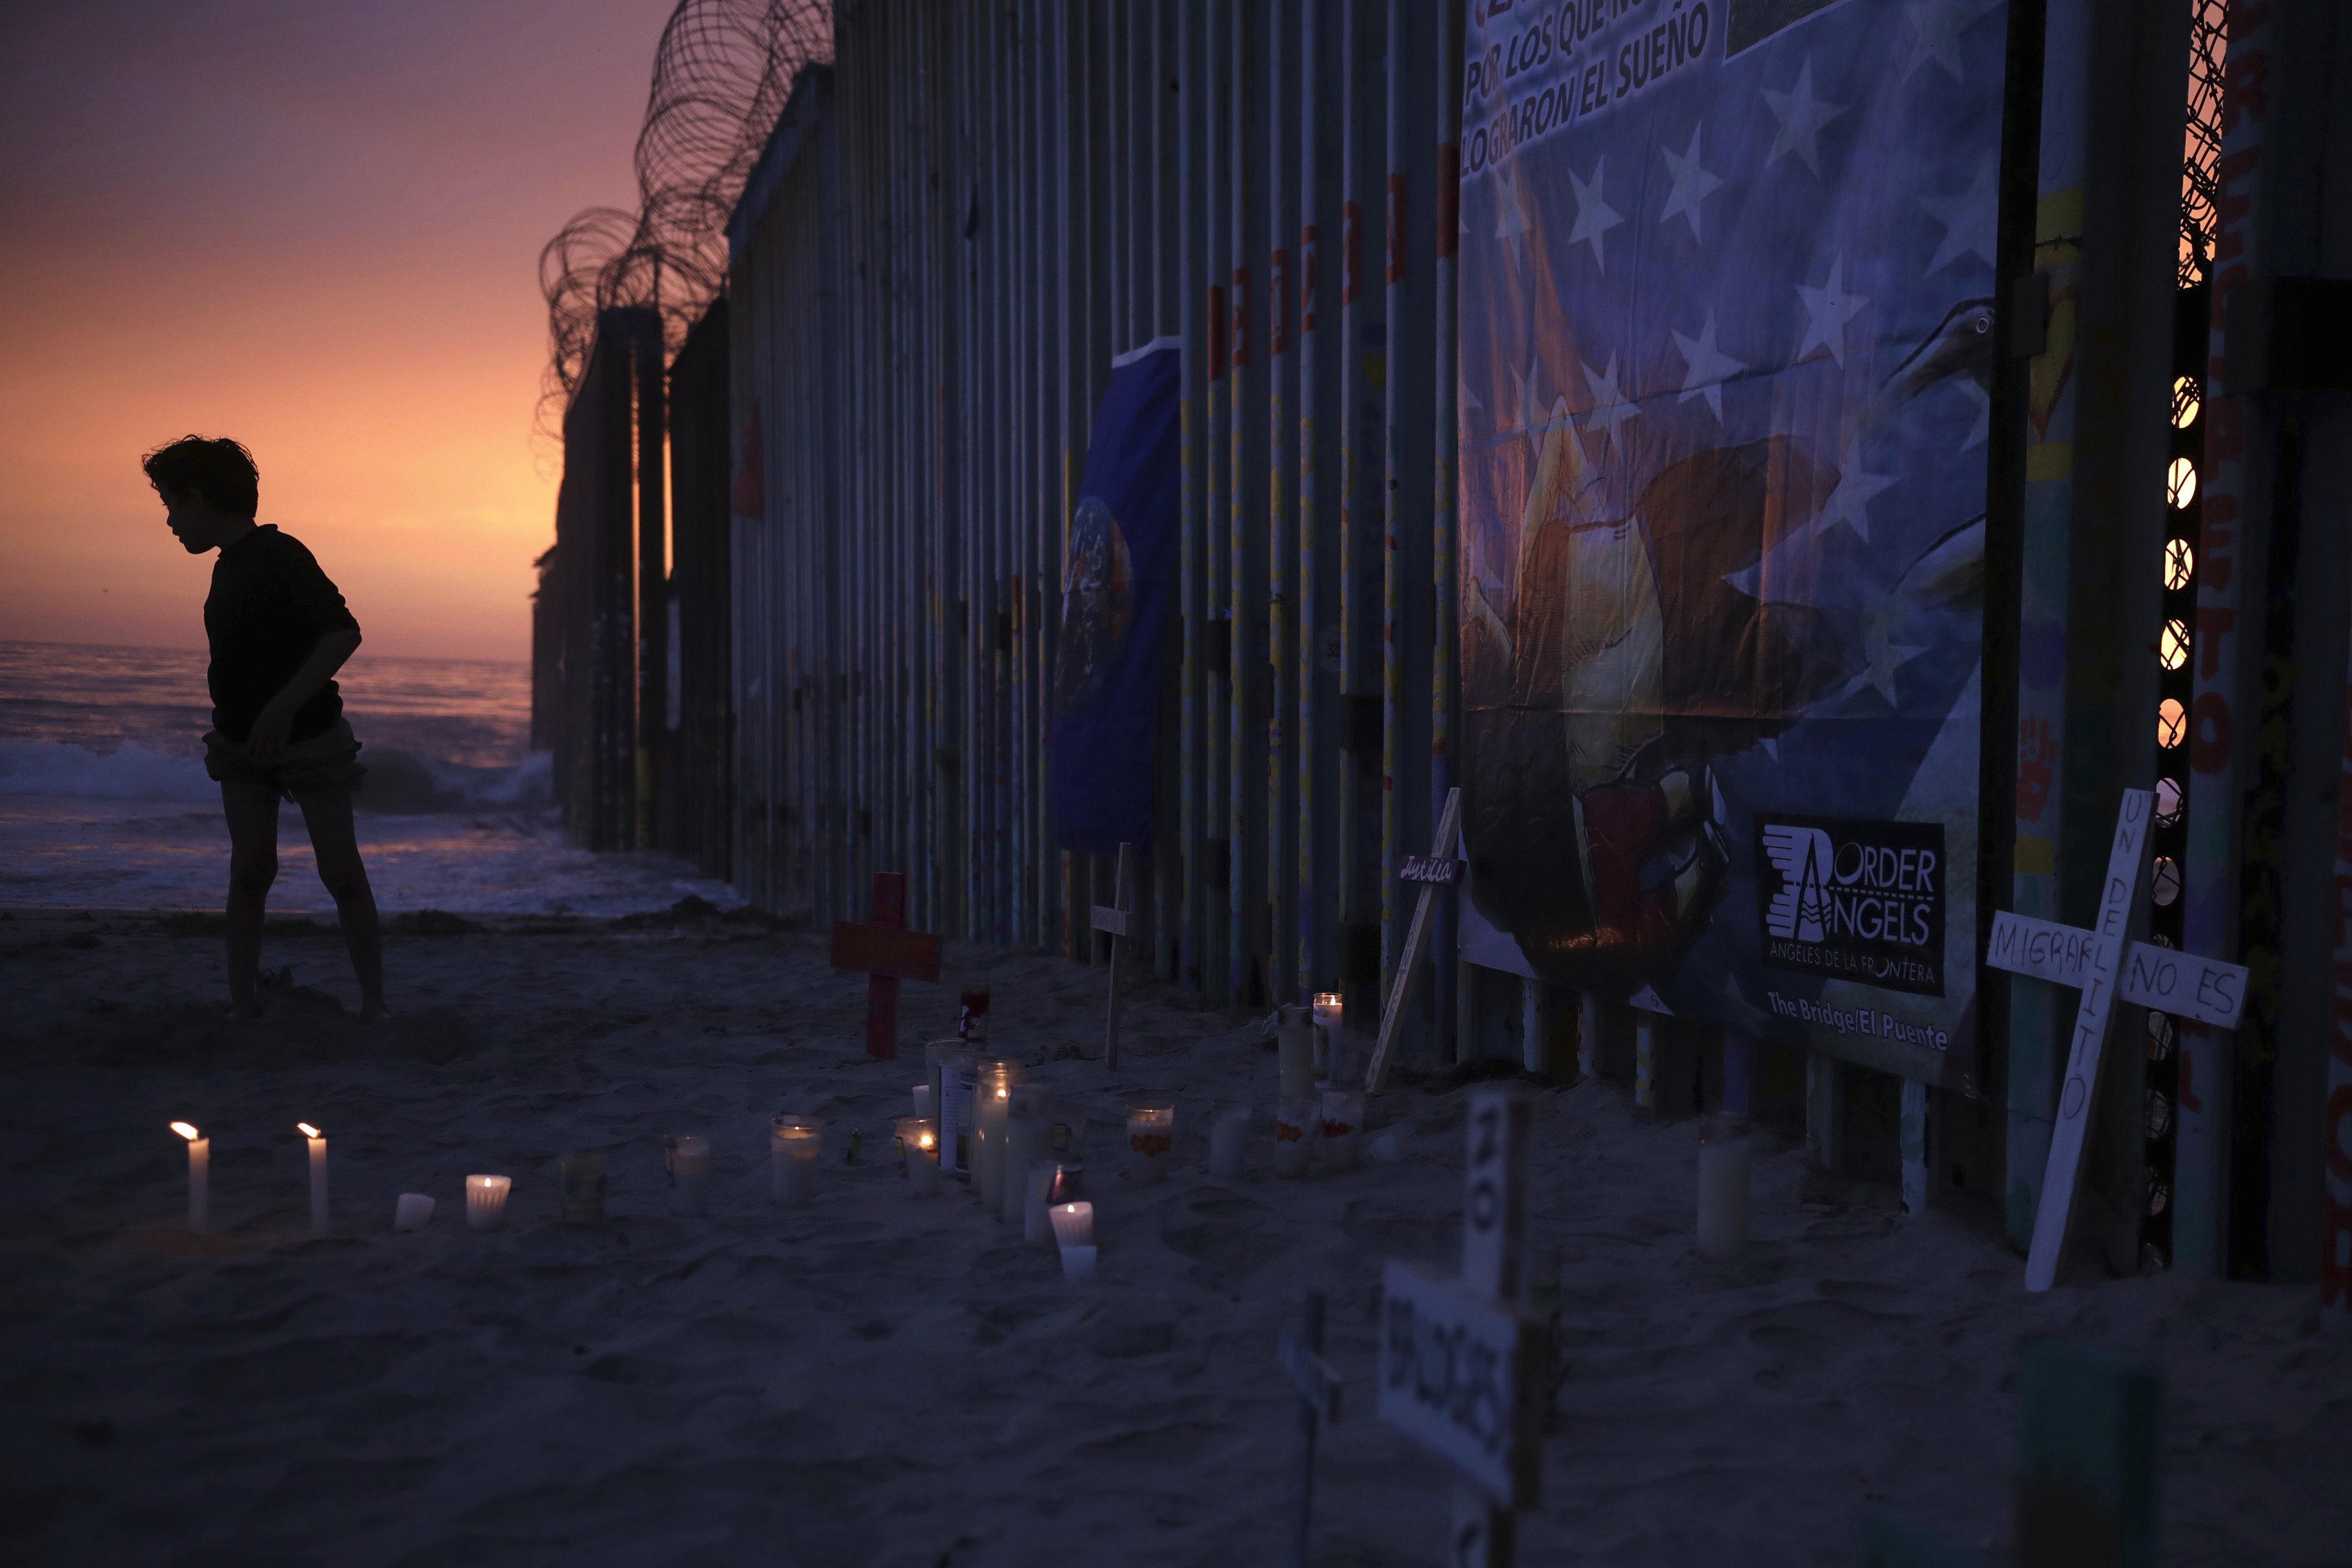 Democrats need an immigration policy that blends compassion with pragmatism